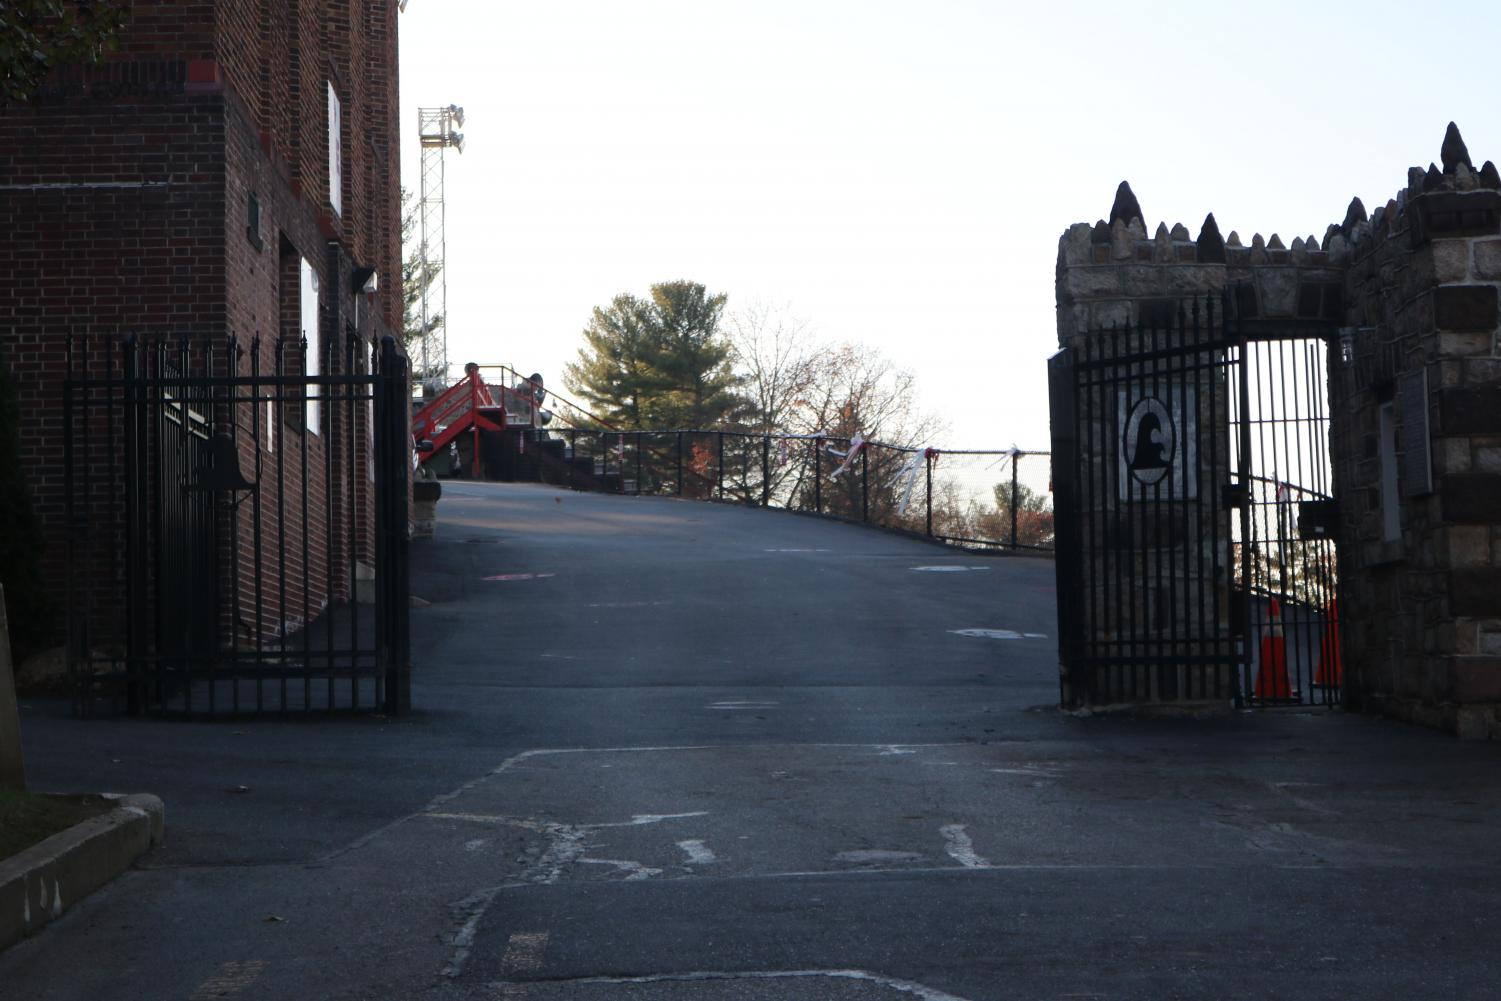 The 5K course followed the same path the cross country team uses. All participants ran through the gate of Veterans Memorial stadium at the race's end.